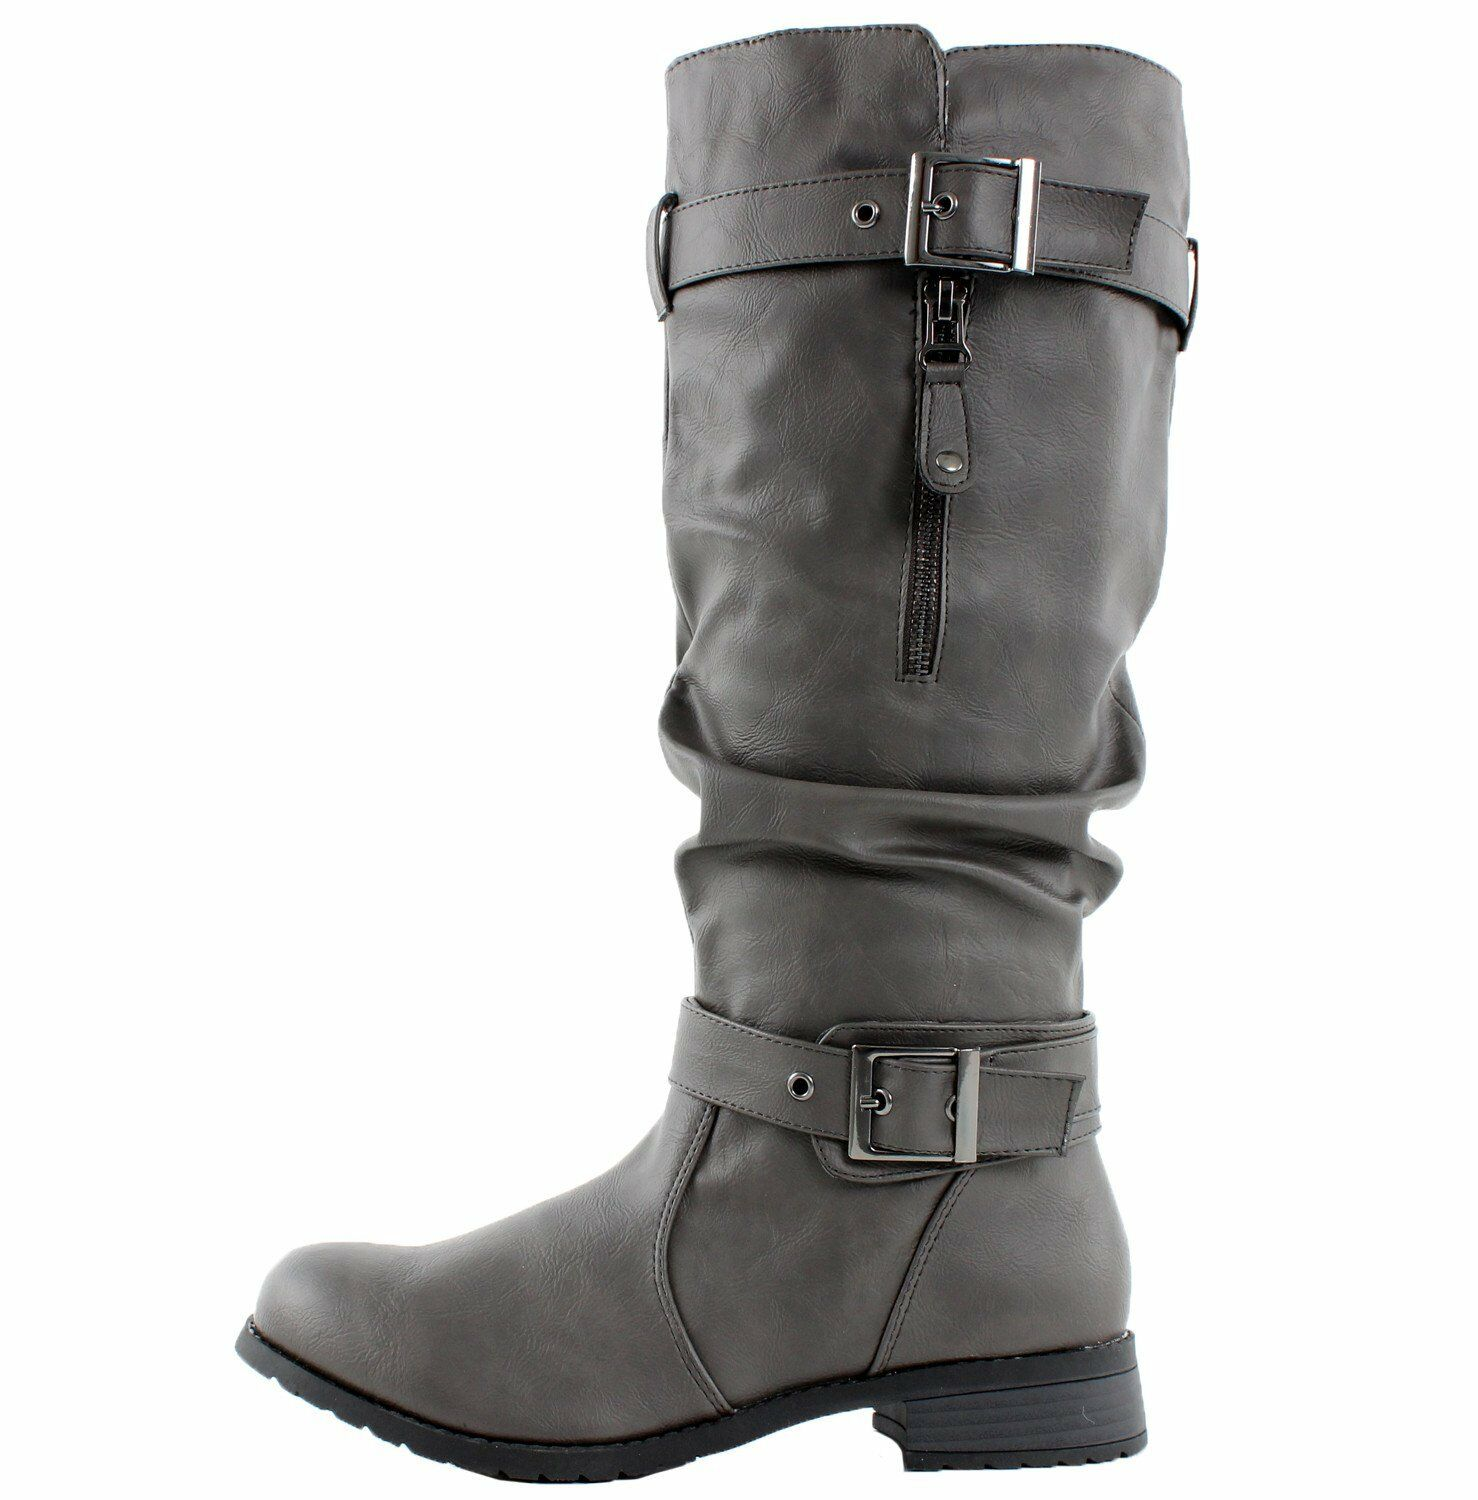 Womens West Blvd Madras Riding Slouch Boots NEW in Box